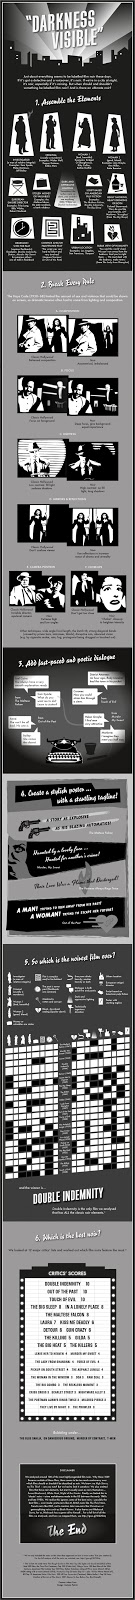 http://www.bfi.org.uk/news-opinion/news-bfi/features/infographic-what-makes-film-noir